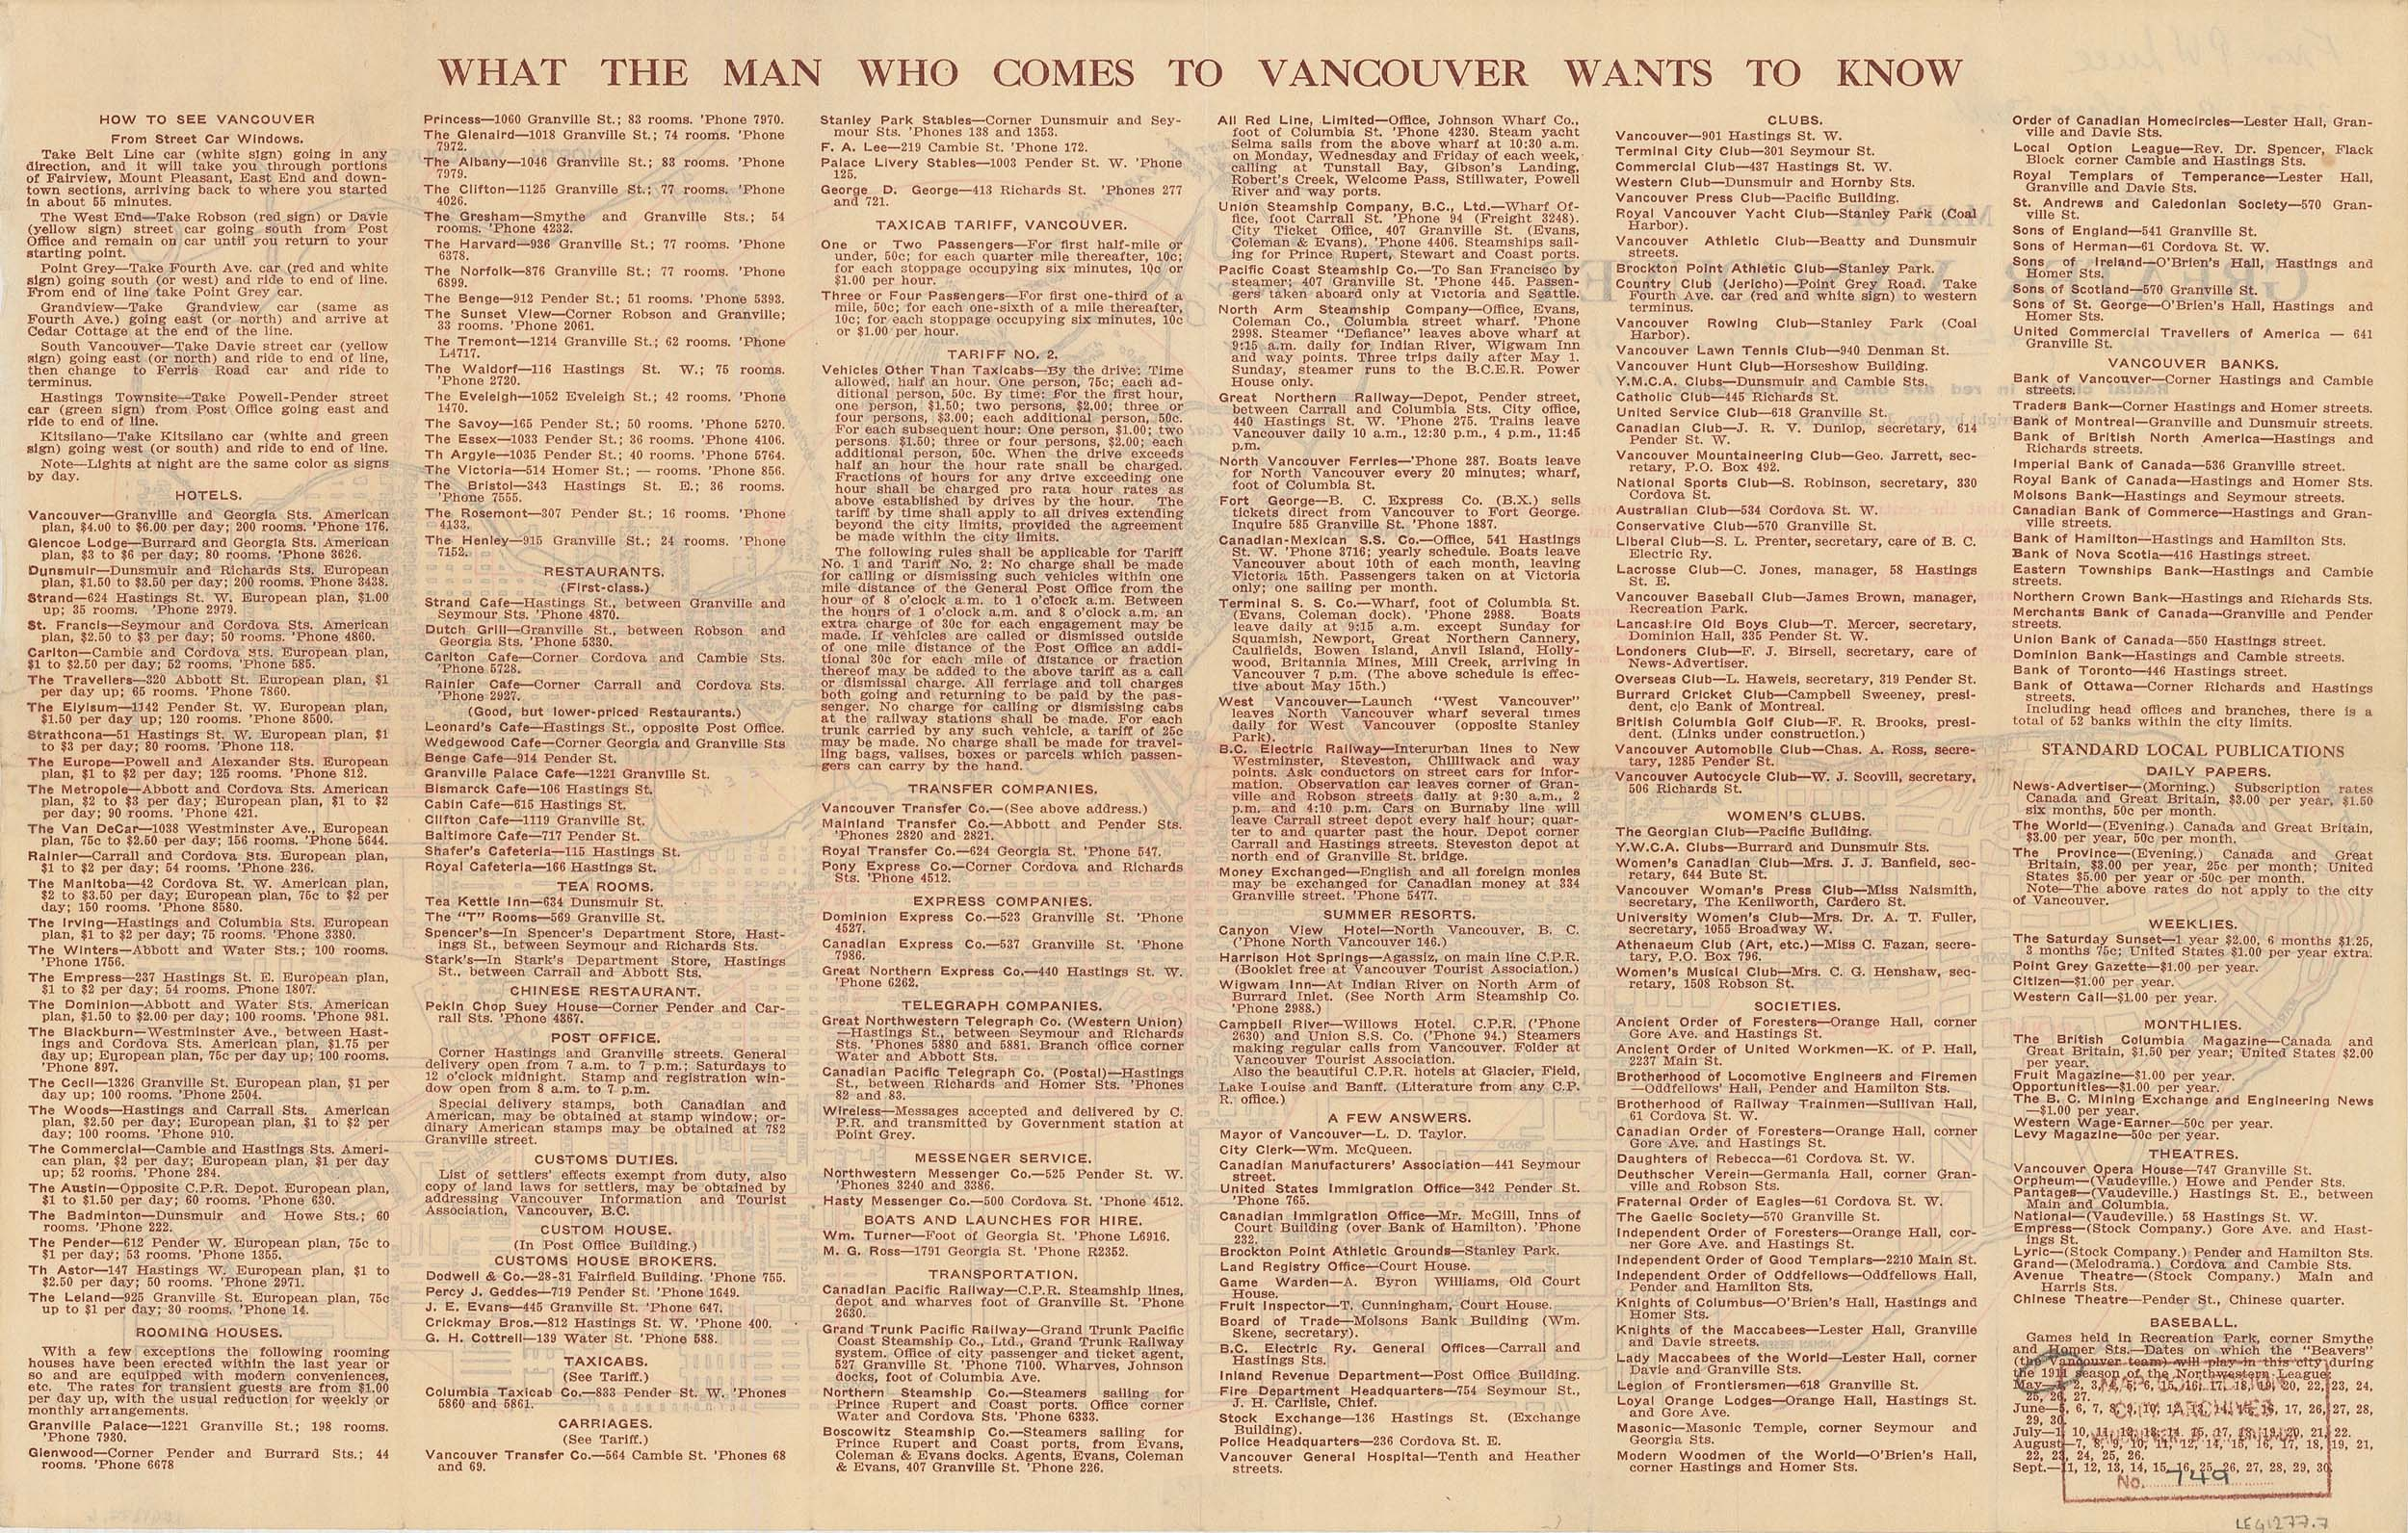 """What the man who comes to Vancouver wants to know"", 1911. Reference code AM1594-: MAP 749-: LEG1277.7."